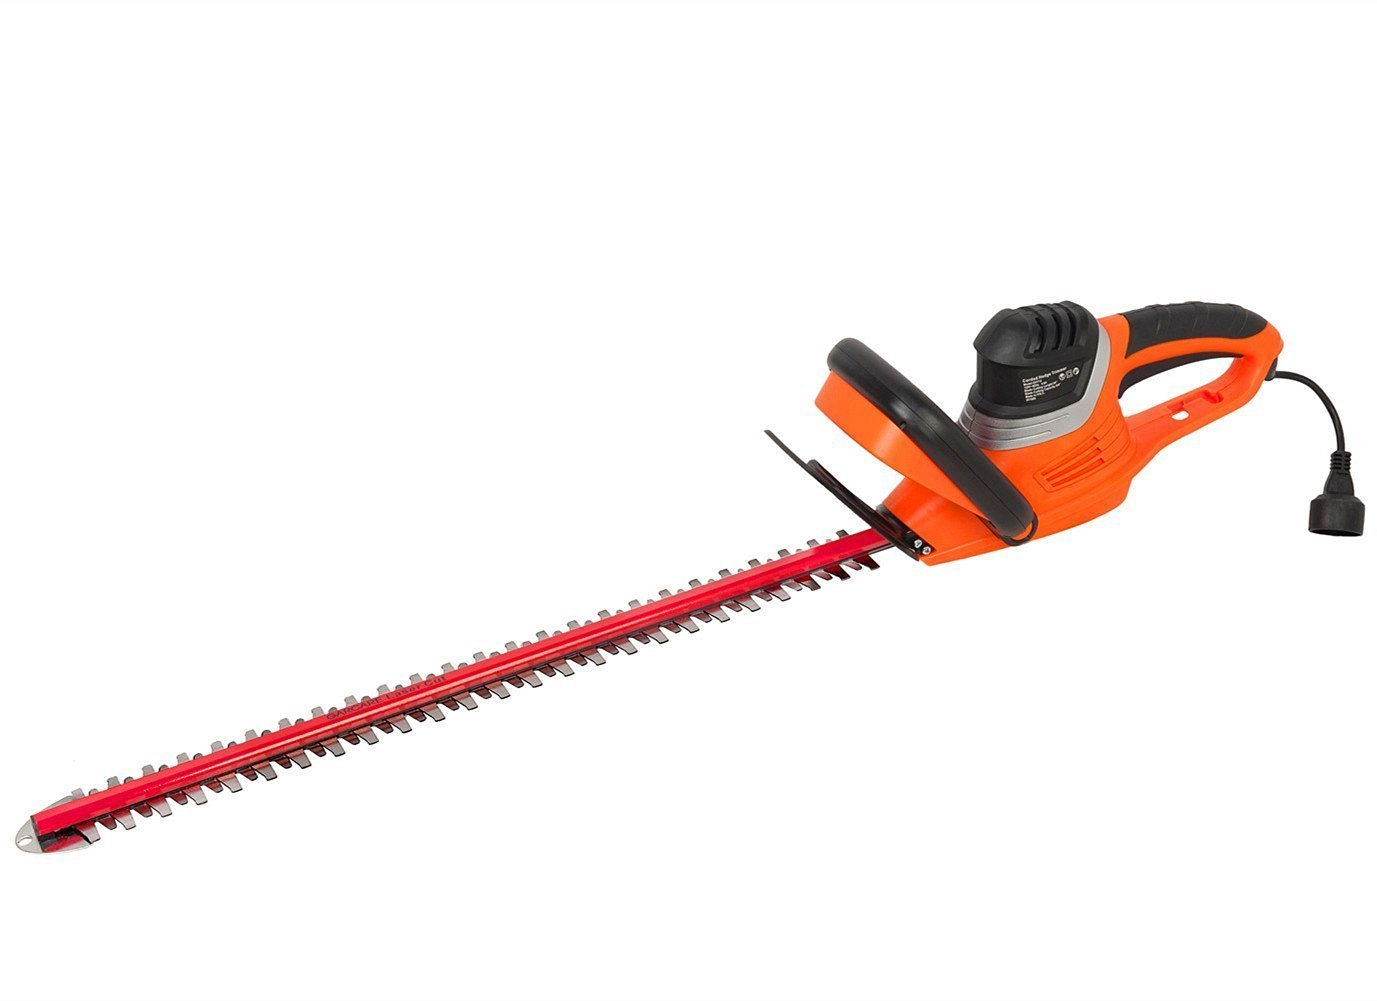 GARCARE 4.6-Amp Corded Hedge Trimmer with 24-Inch Laser Cutting Blade, Blade Cover Included GHT12